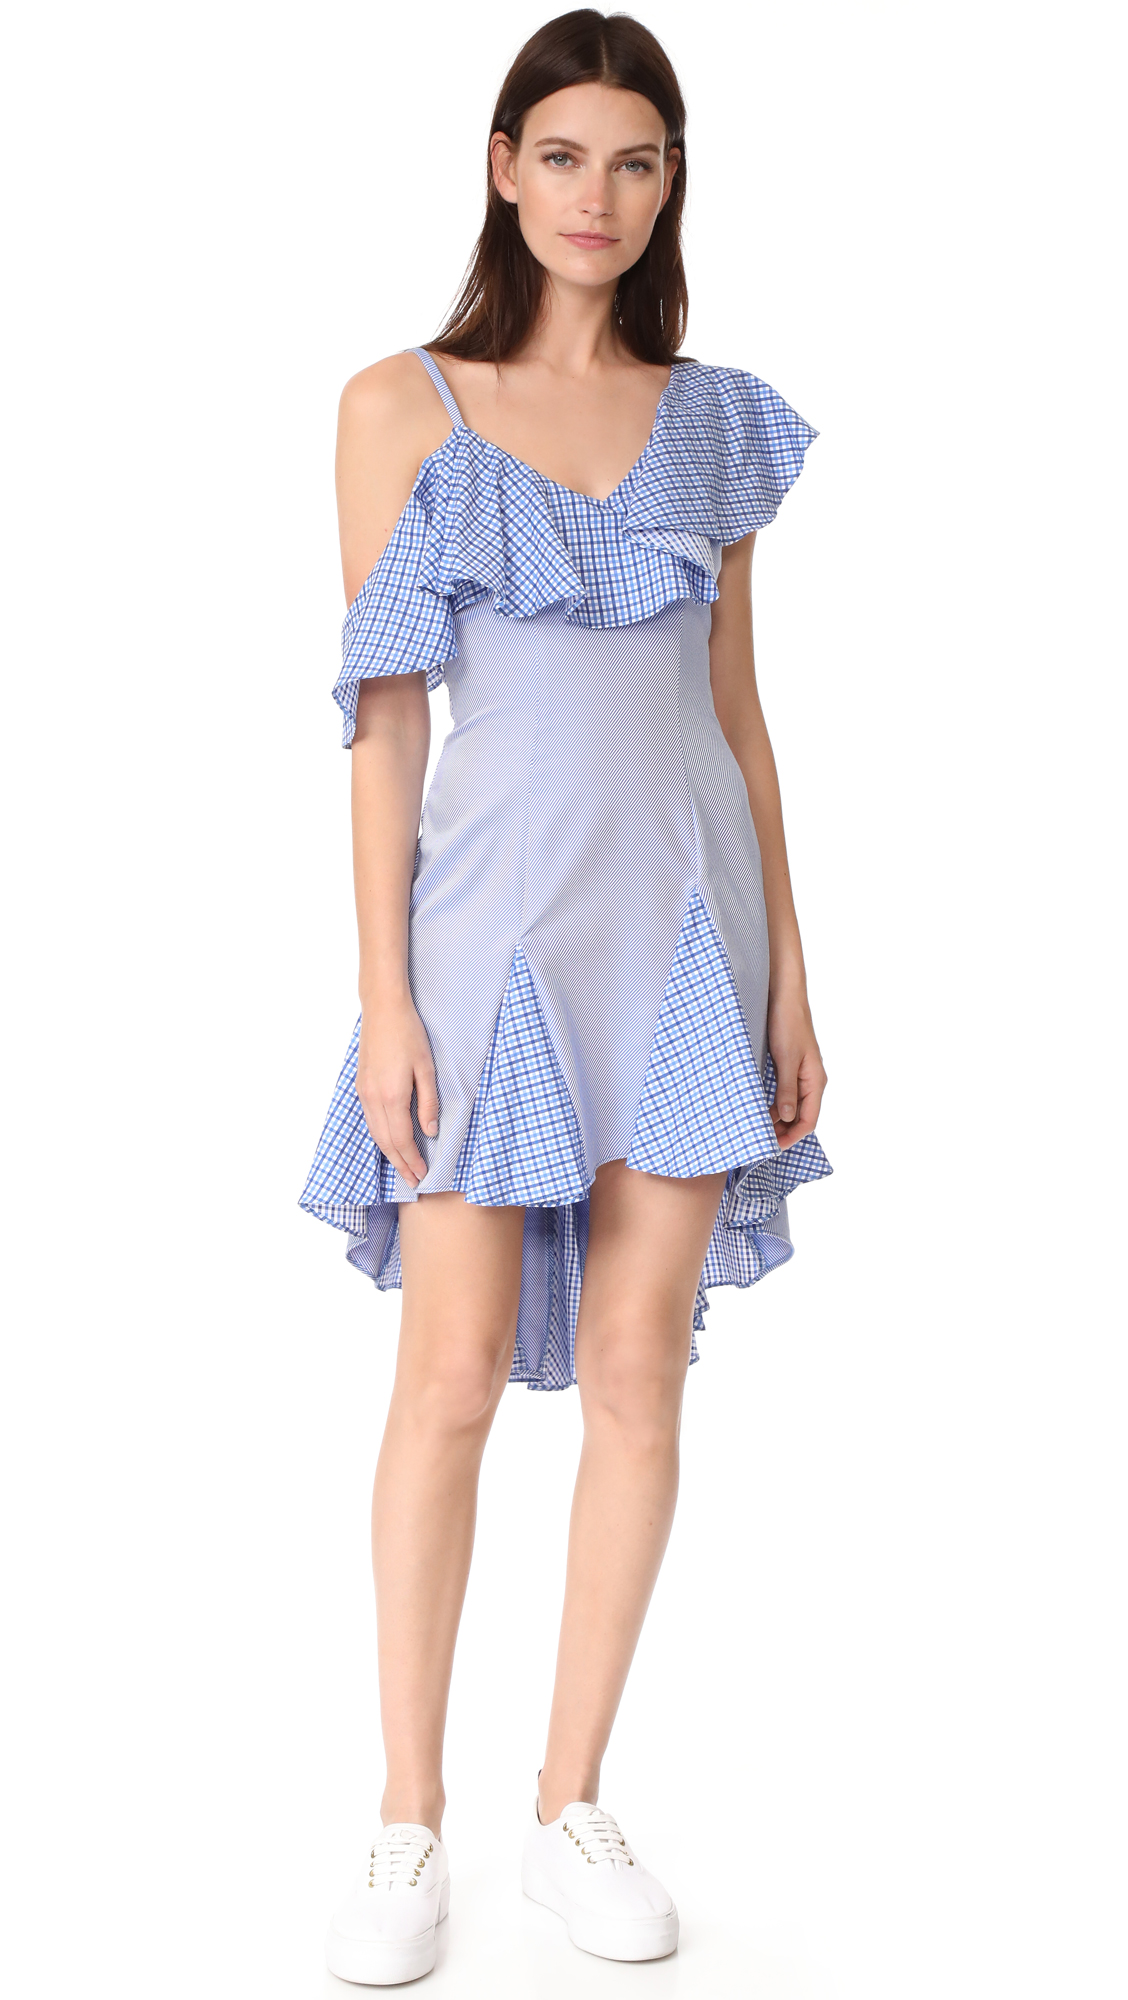 ONE by Daria Off Shoulder Ruffle Dress - Navy/White